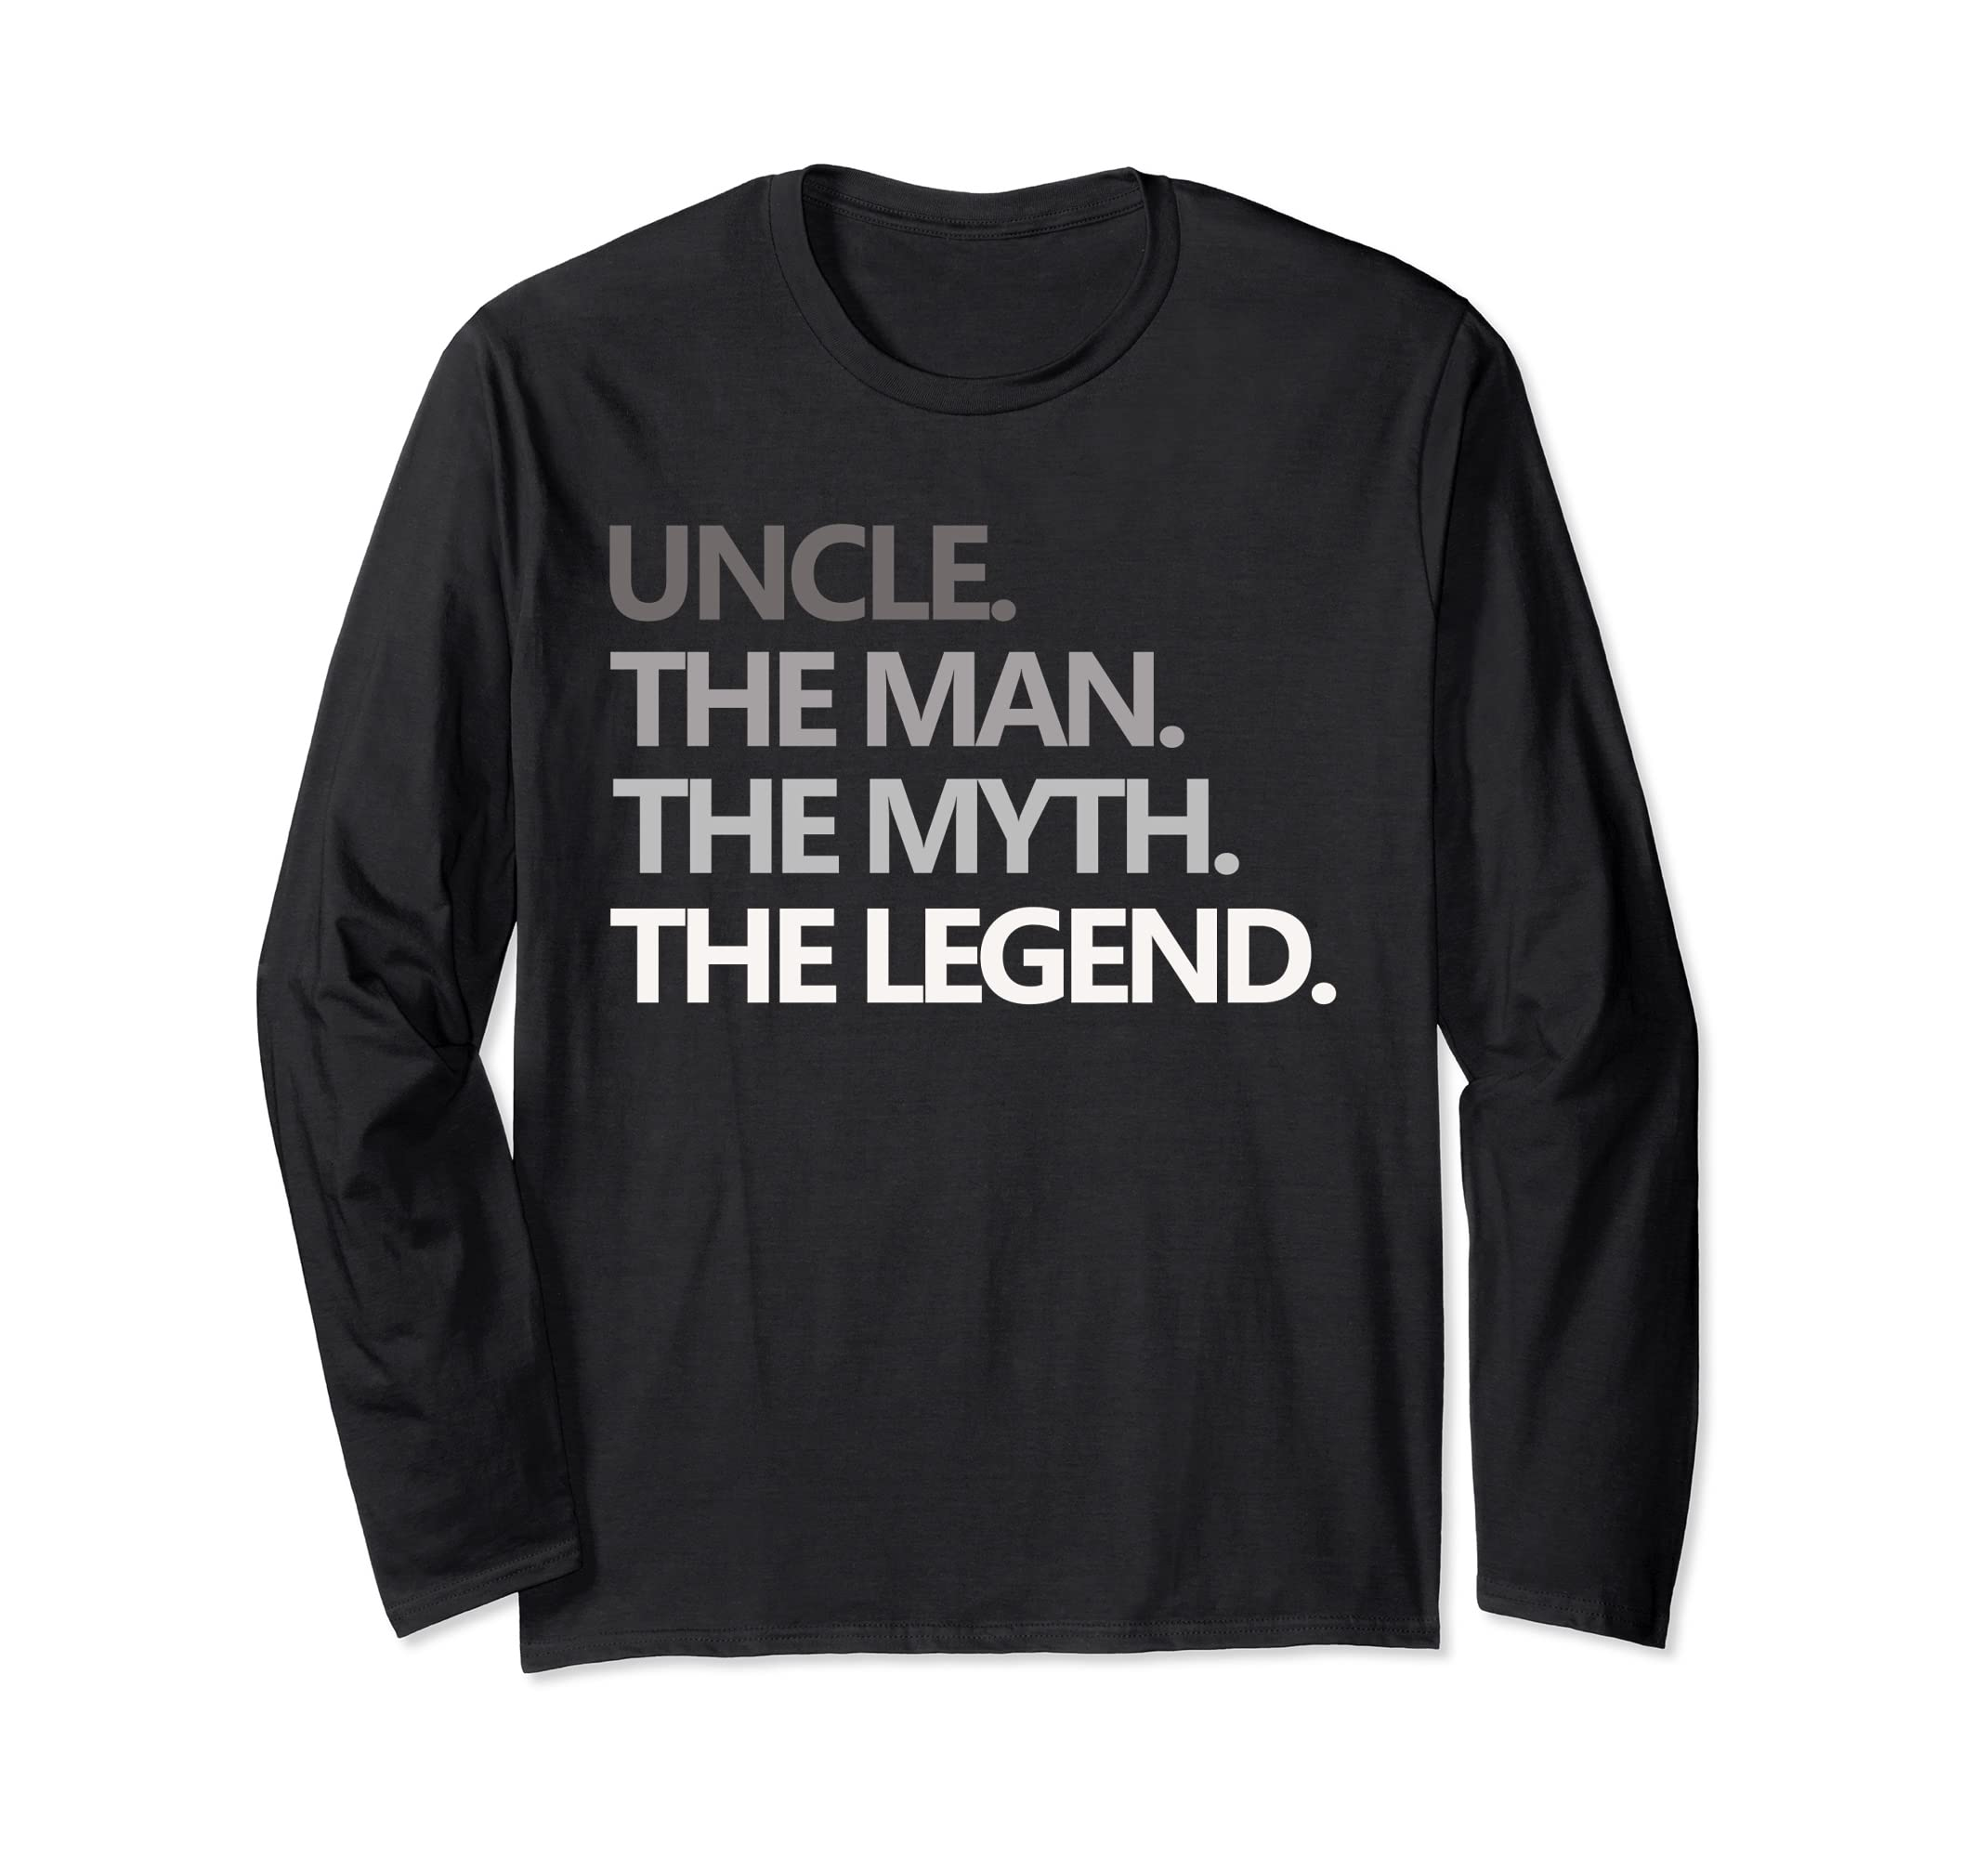 Christmas Gift For Men Uncle The Man Myth Legend T Shirt Fun-SFL